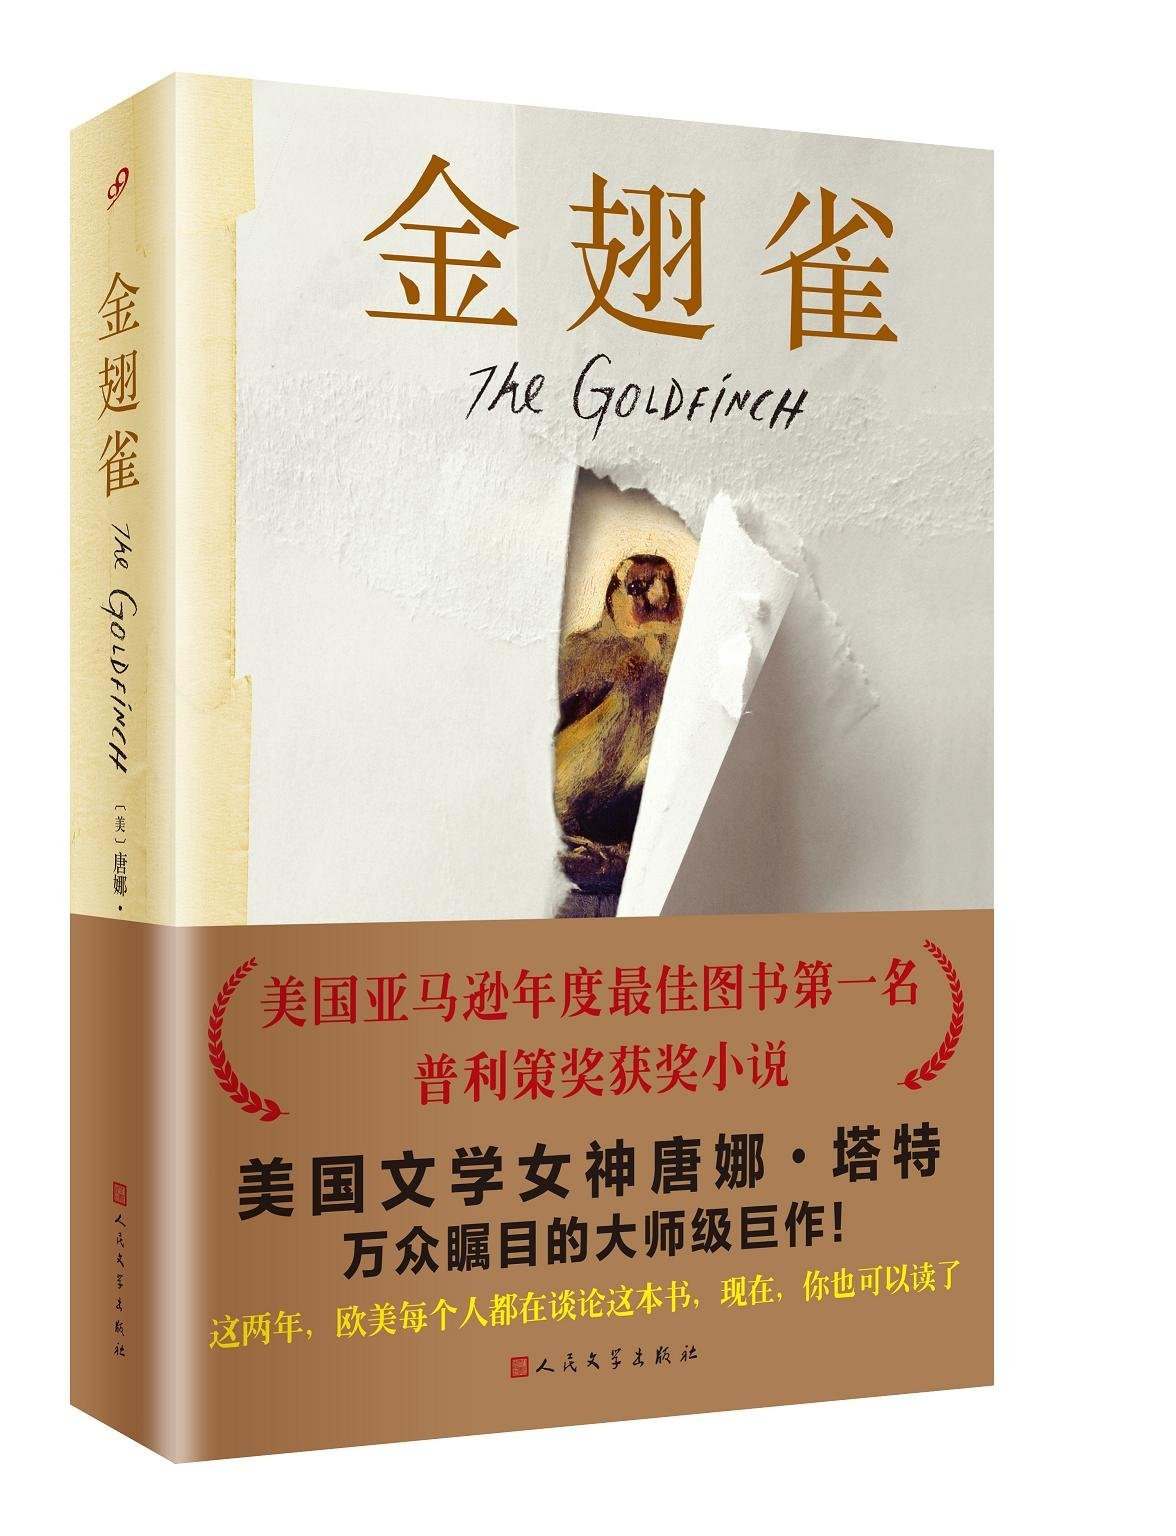 The Goldfinch (Chinese Edition) pdf epub